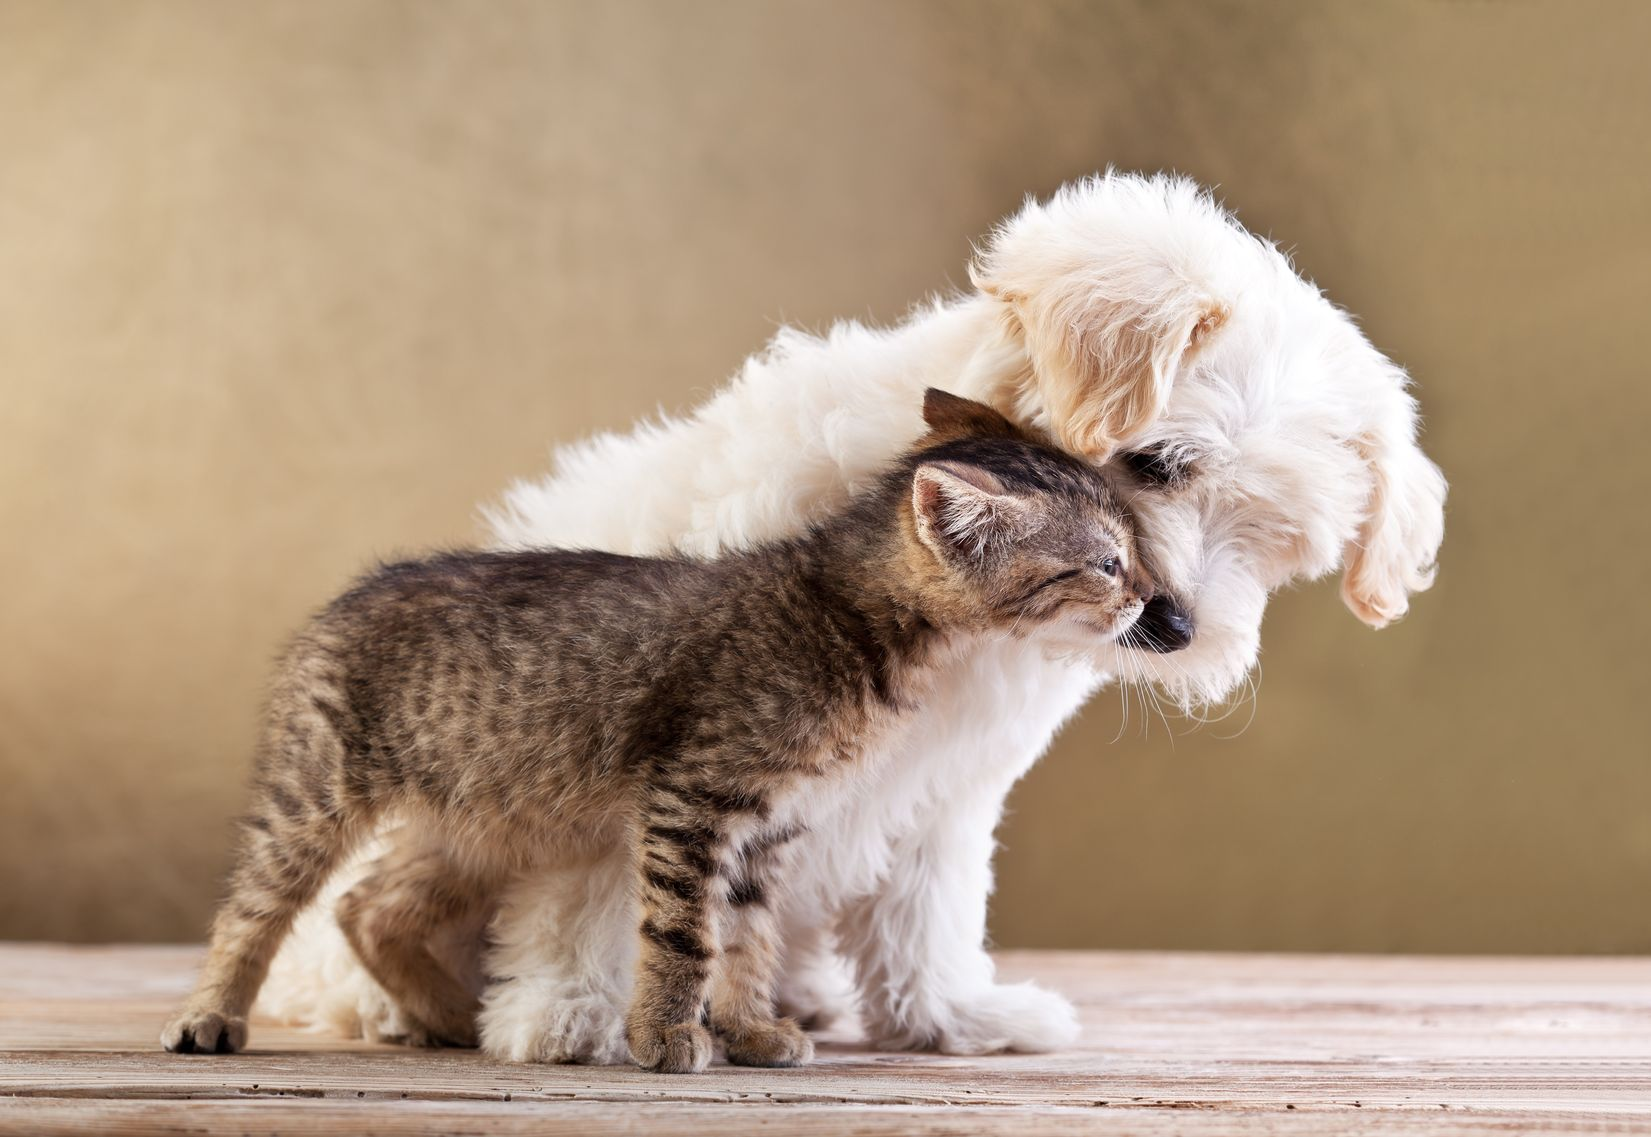 1 Protect Pets Against Heat